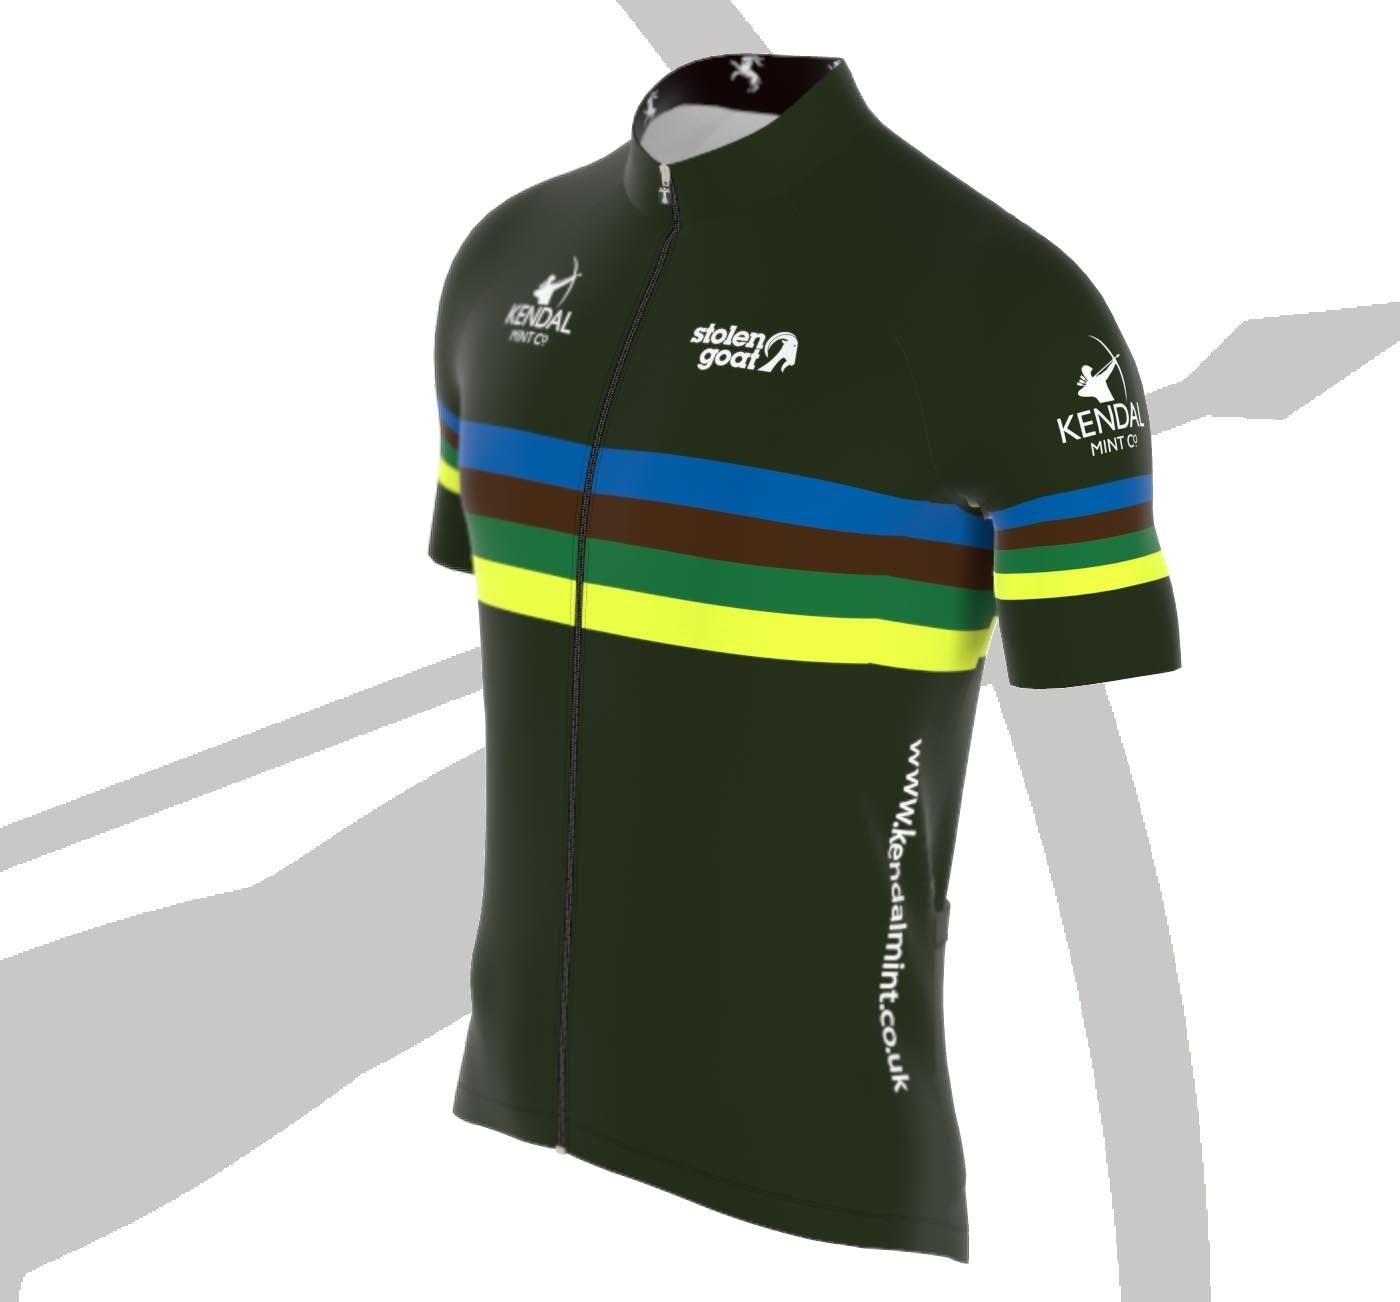 NEW! Kendal Mint Men's Bodyline Cycling Jersey (Limited Stock Available Now))